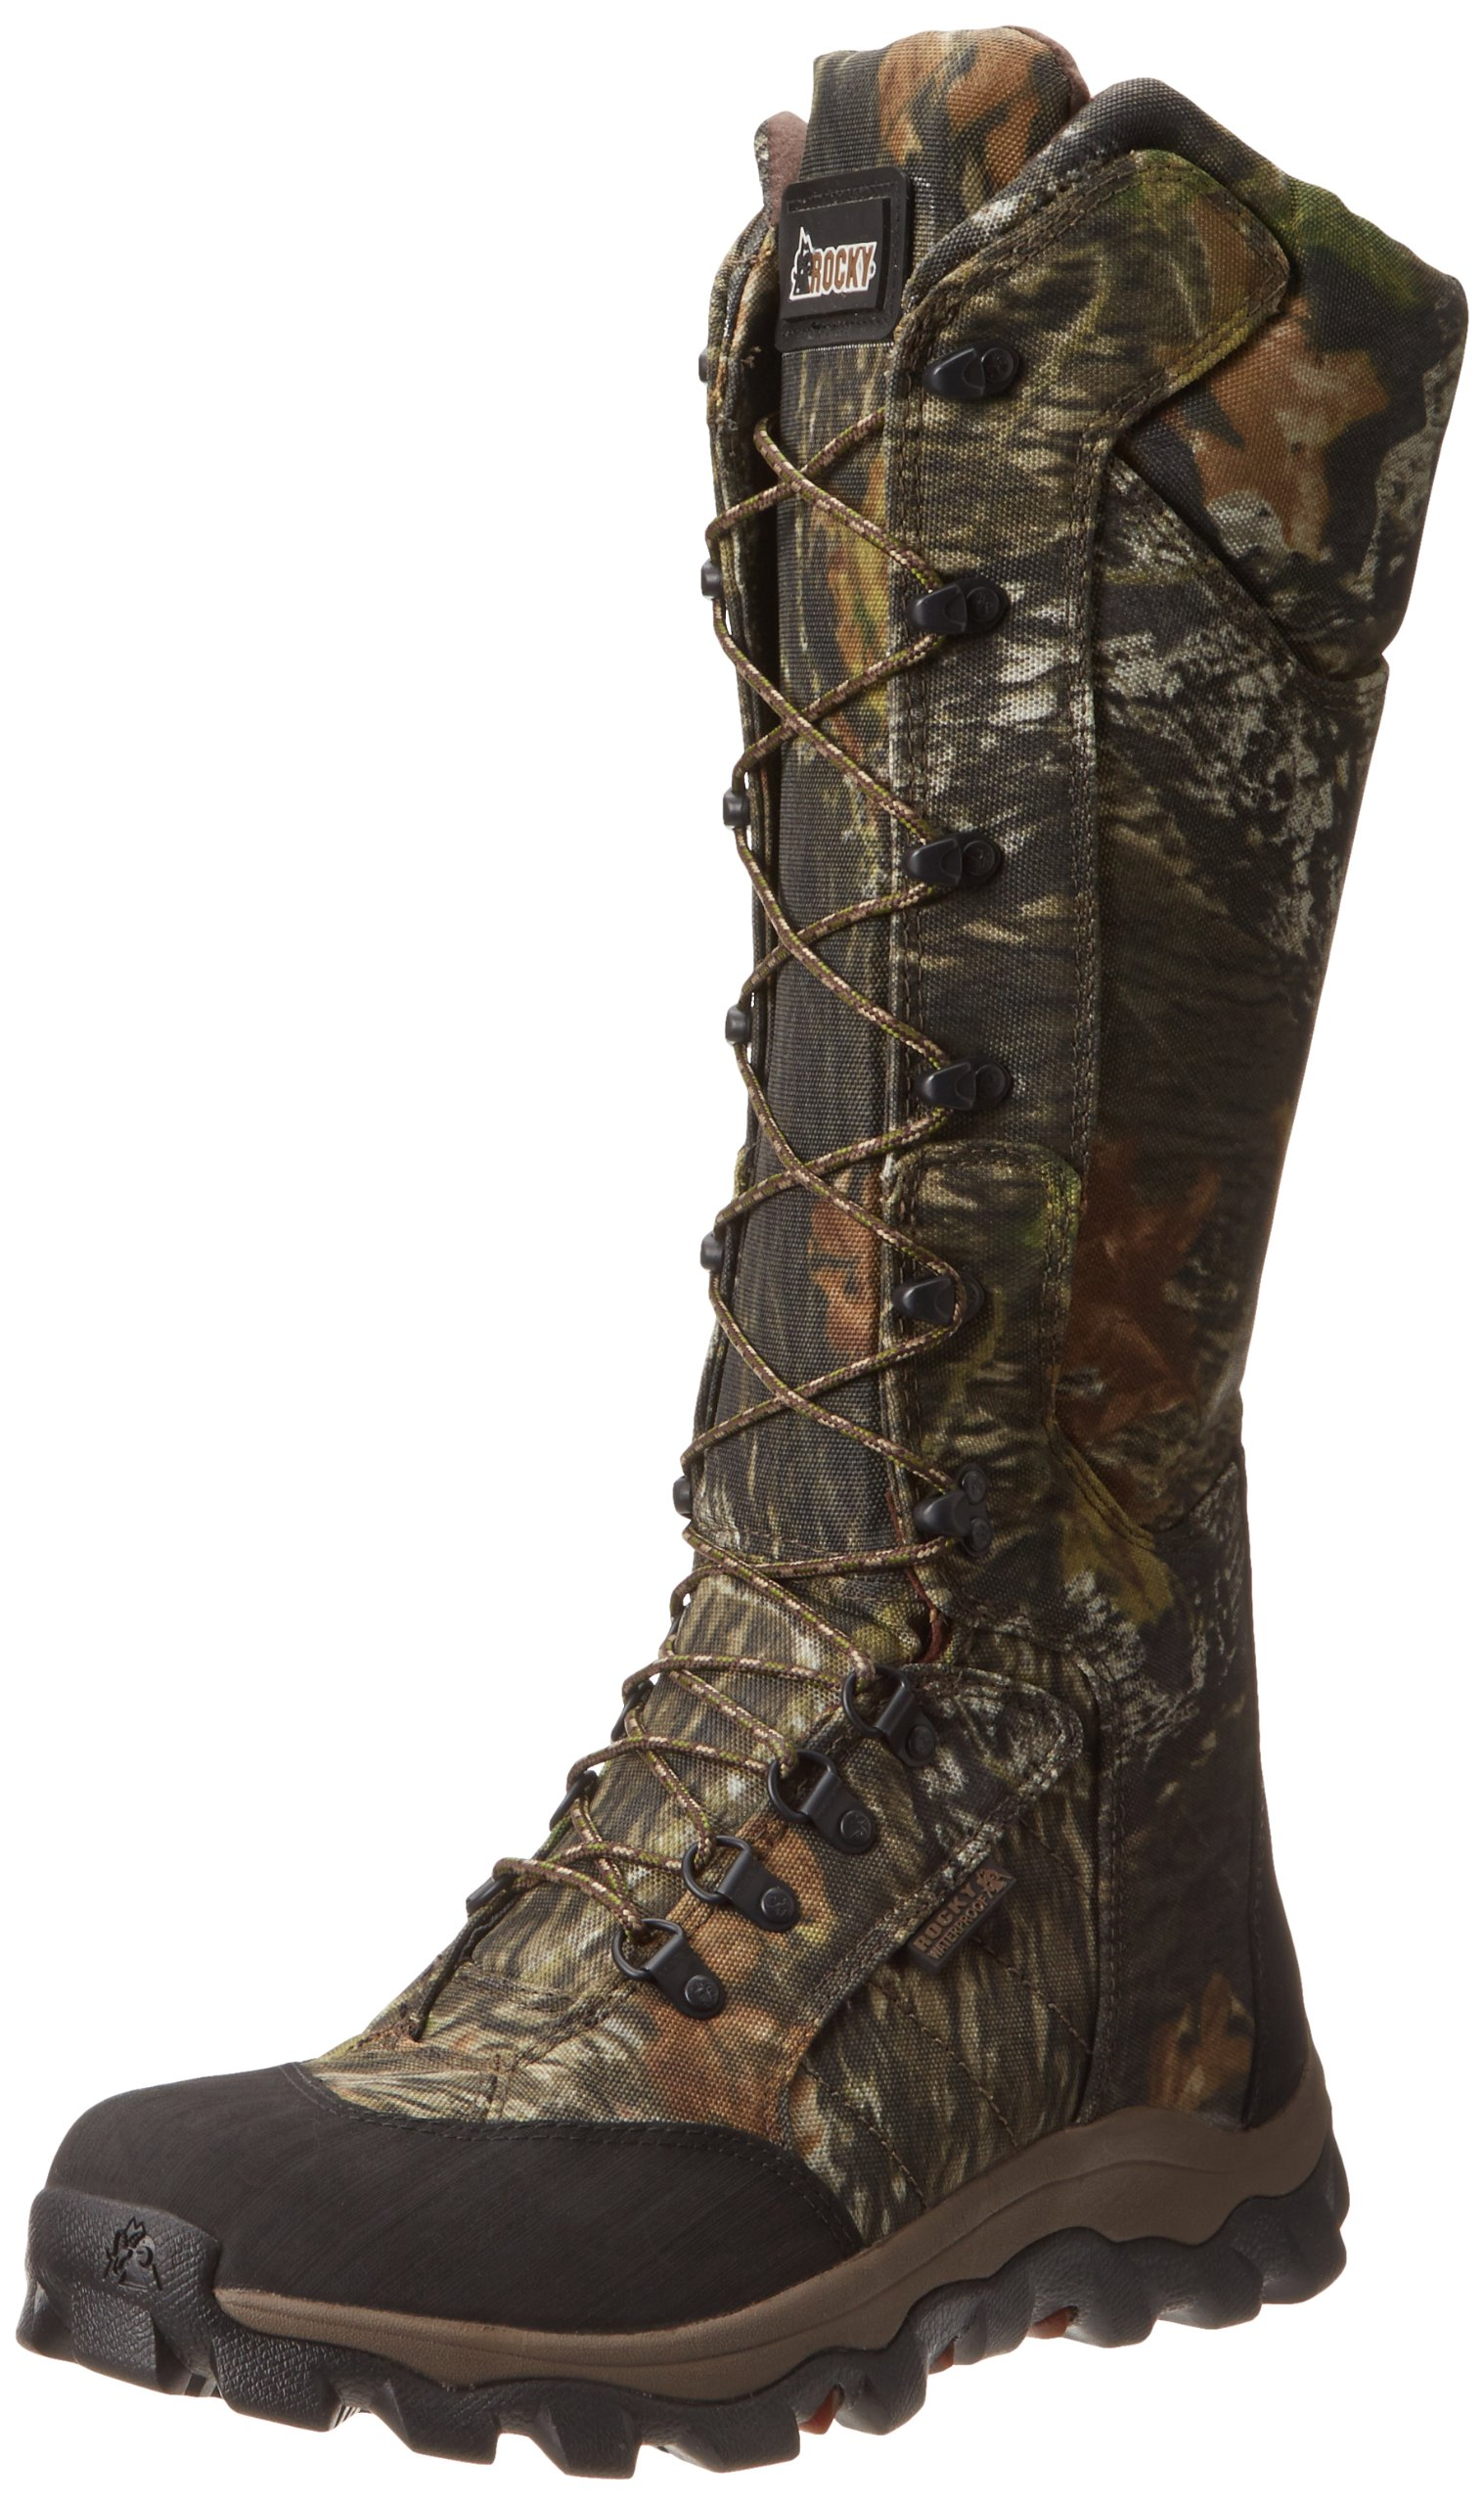 Rocky Men's Lynx Snake Boot Hunting Boot,Mobu,11 M US by Rocky